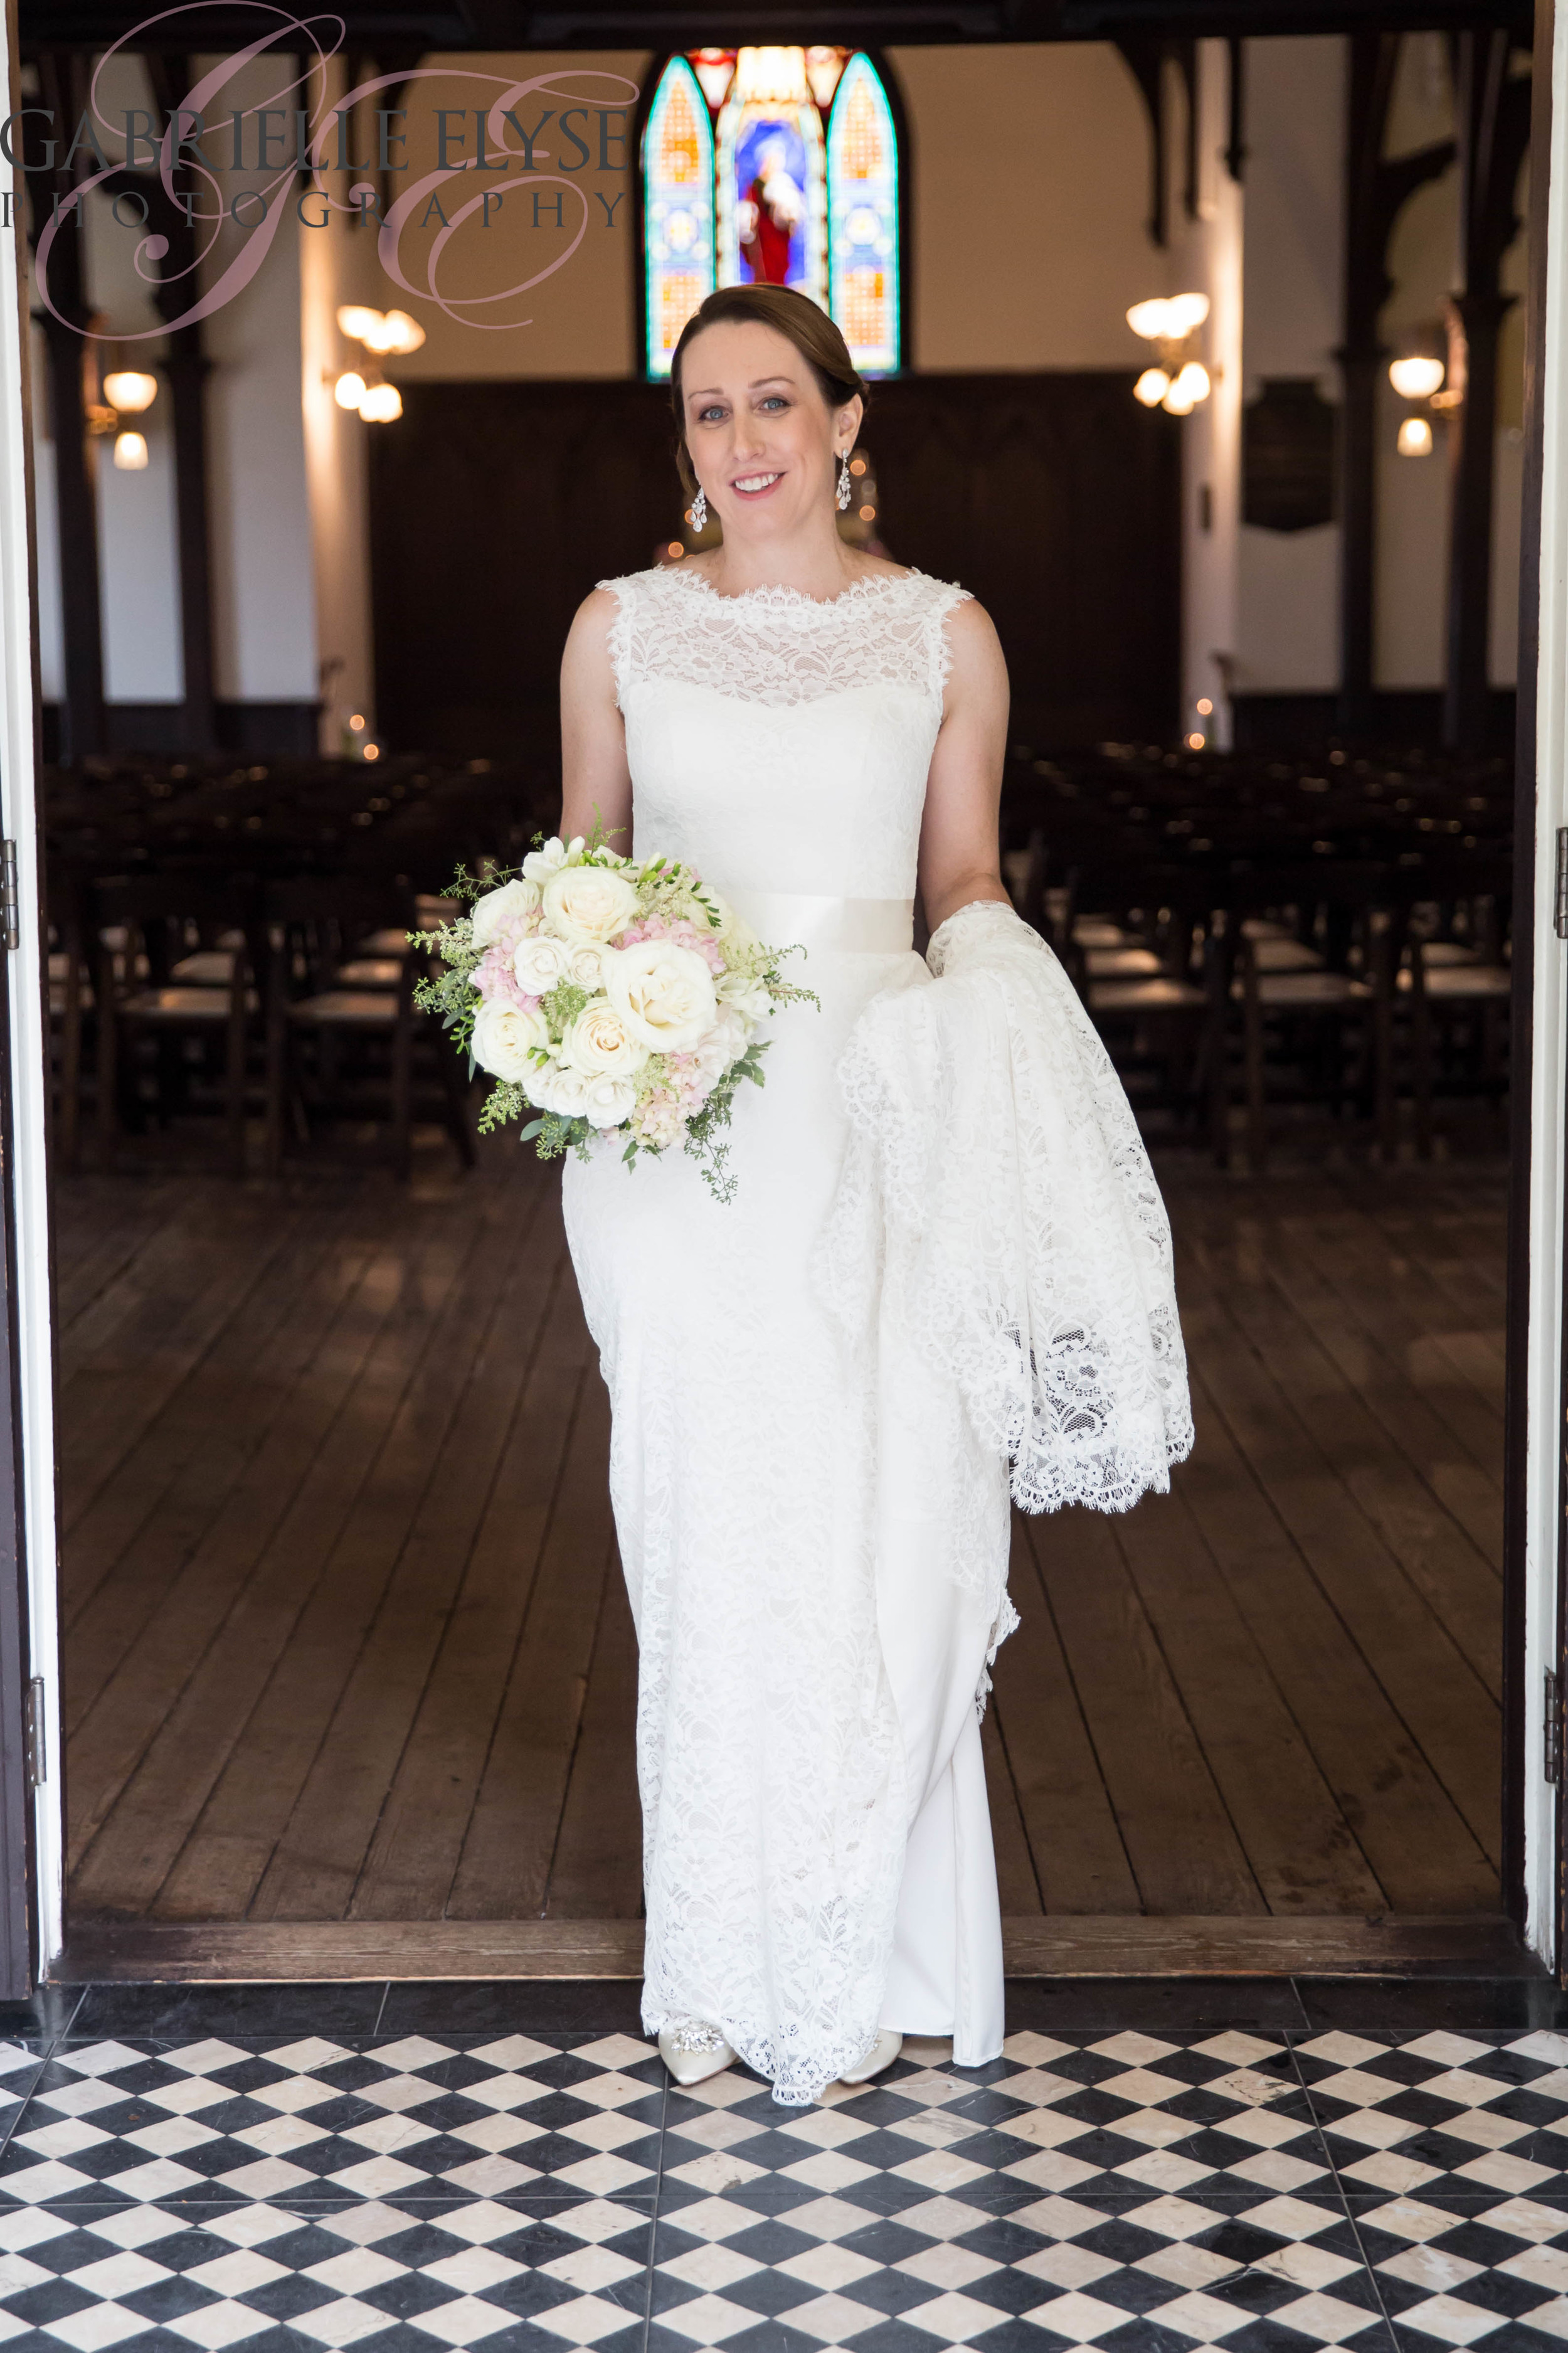 The Gorgeous Bride herself.